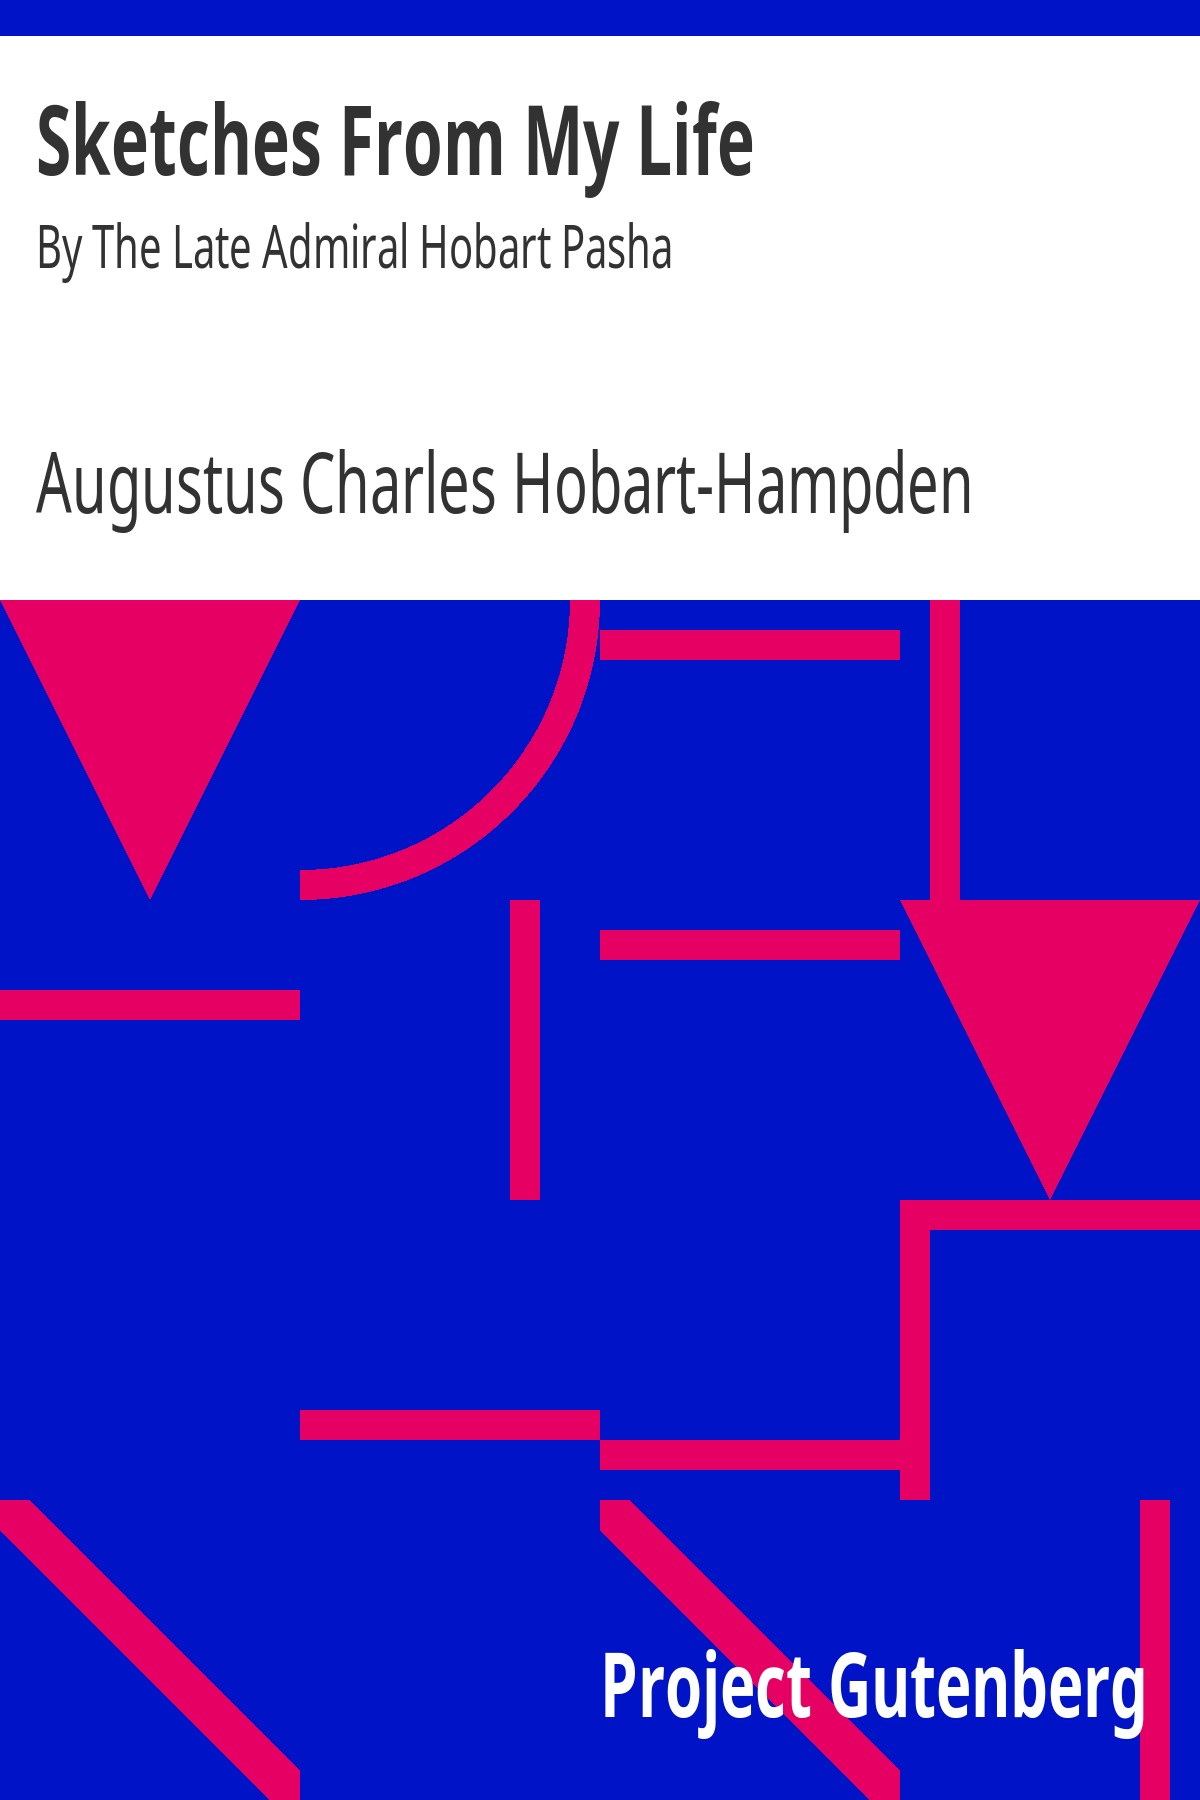 Augustus Charles Hobart-Hampden Sketches From My Life By The Late Admiral Hobart Pasha